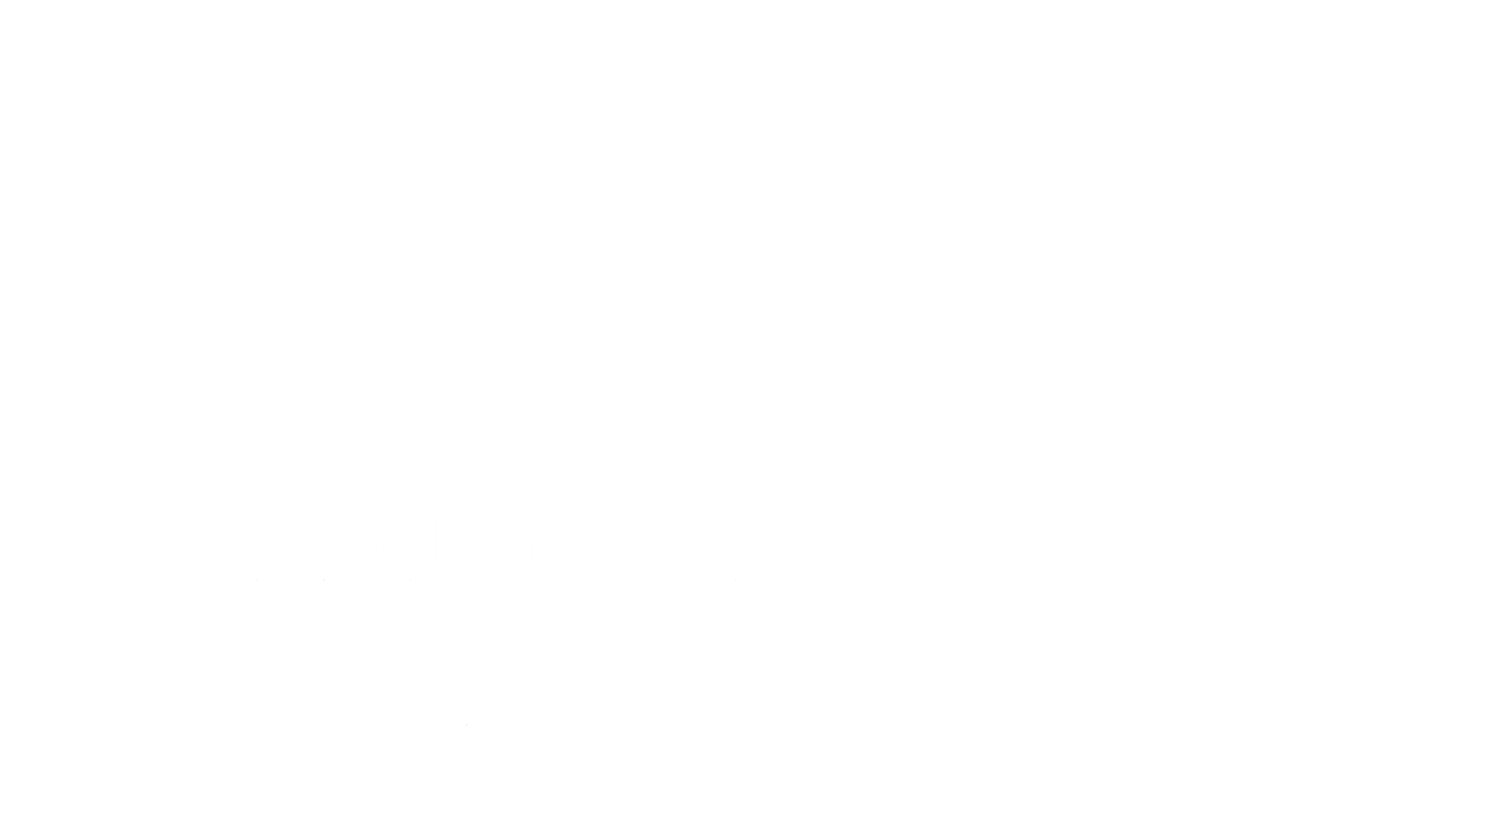 Meadowlark Designs